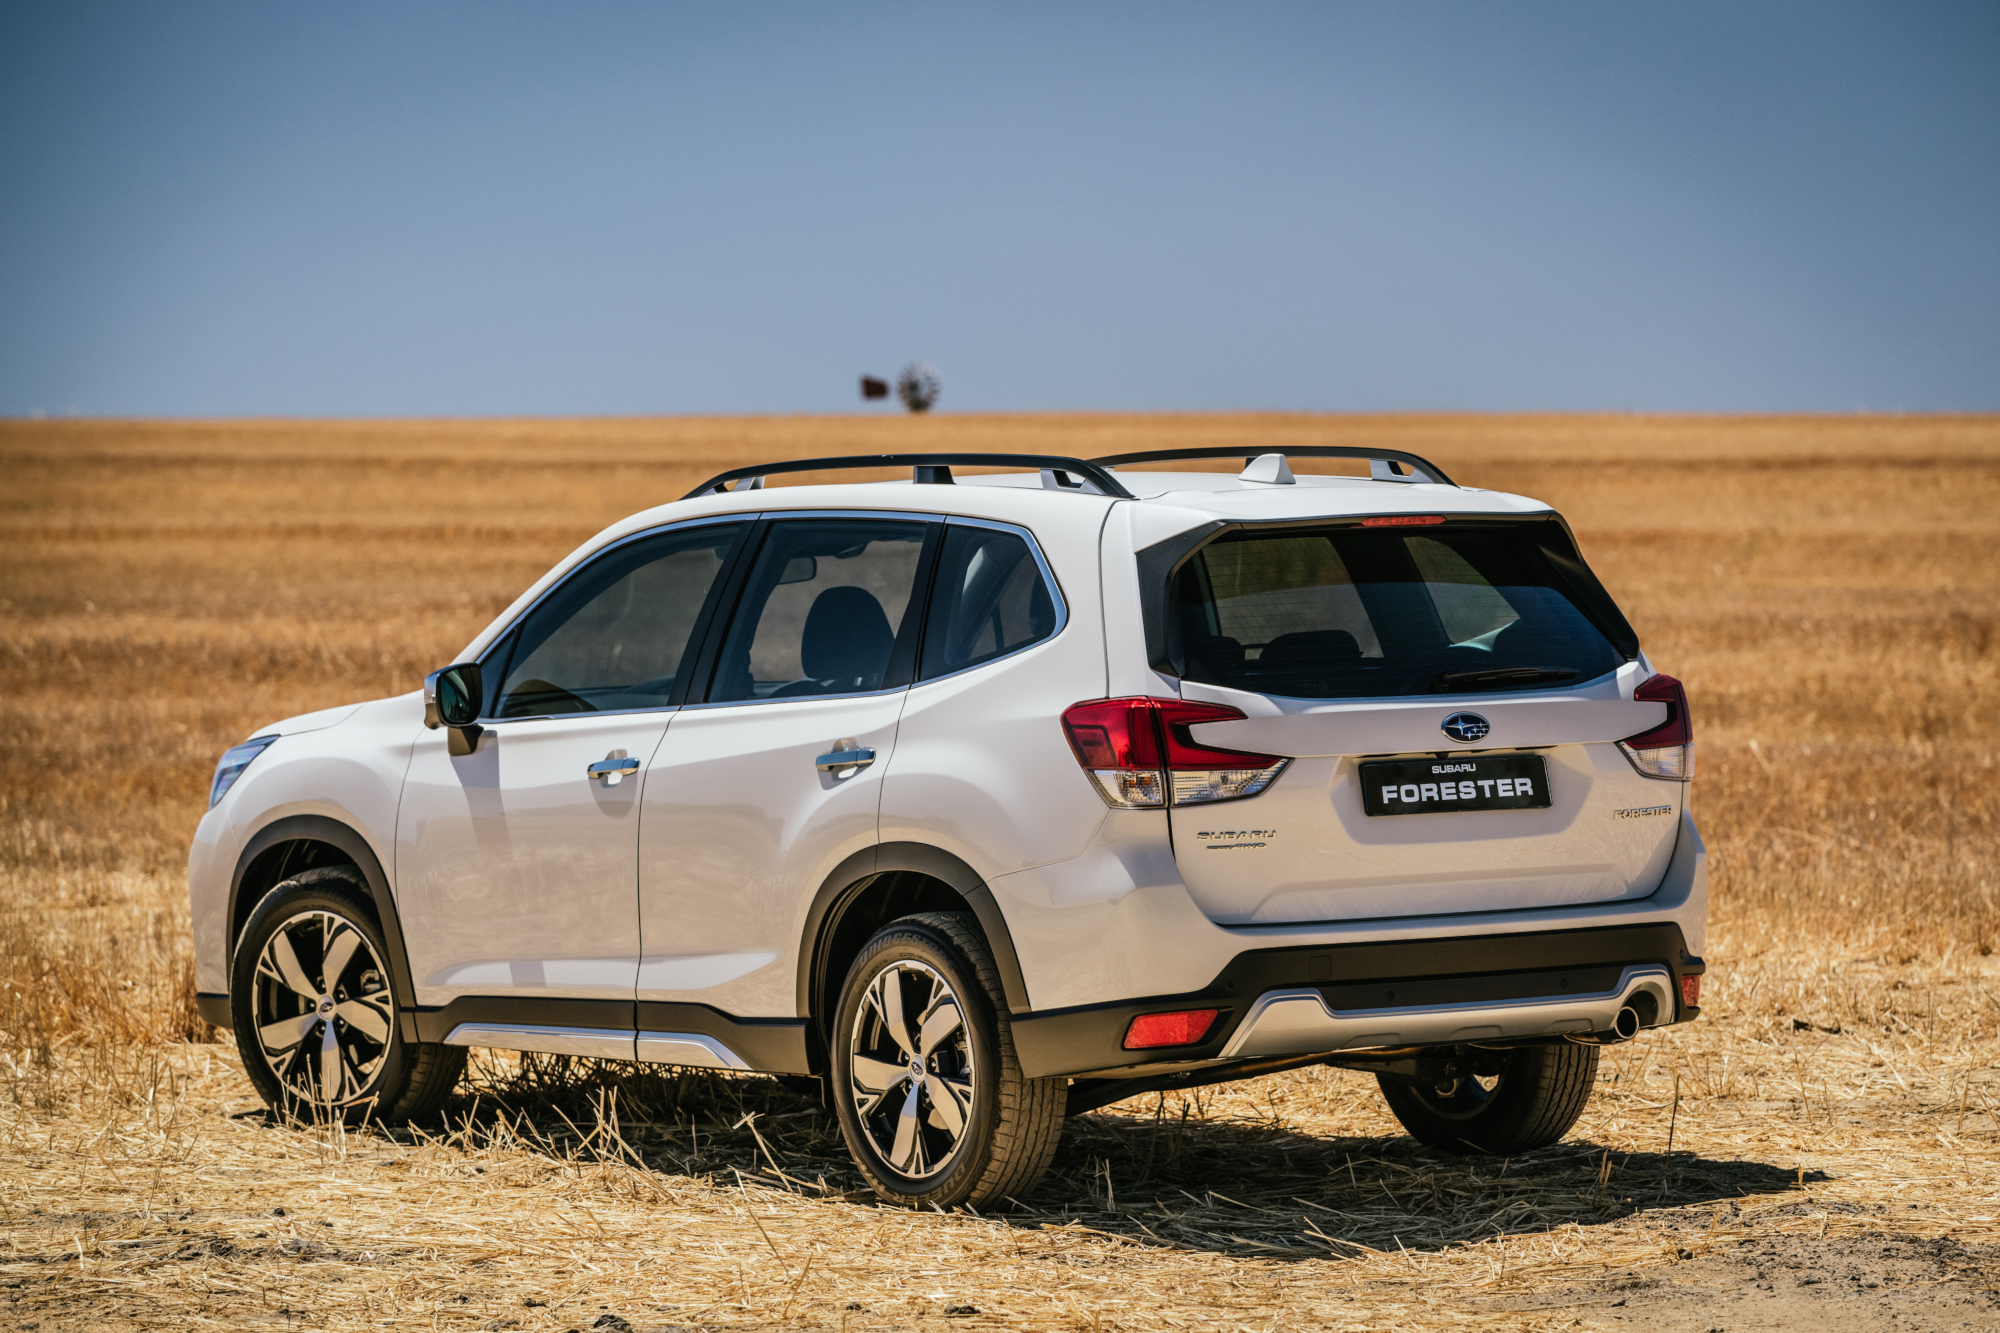 Subaru Forester 2 0i-S ES: Where's the go to match th